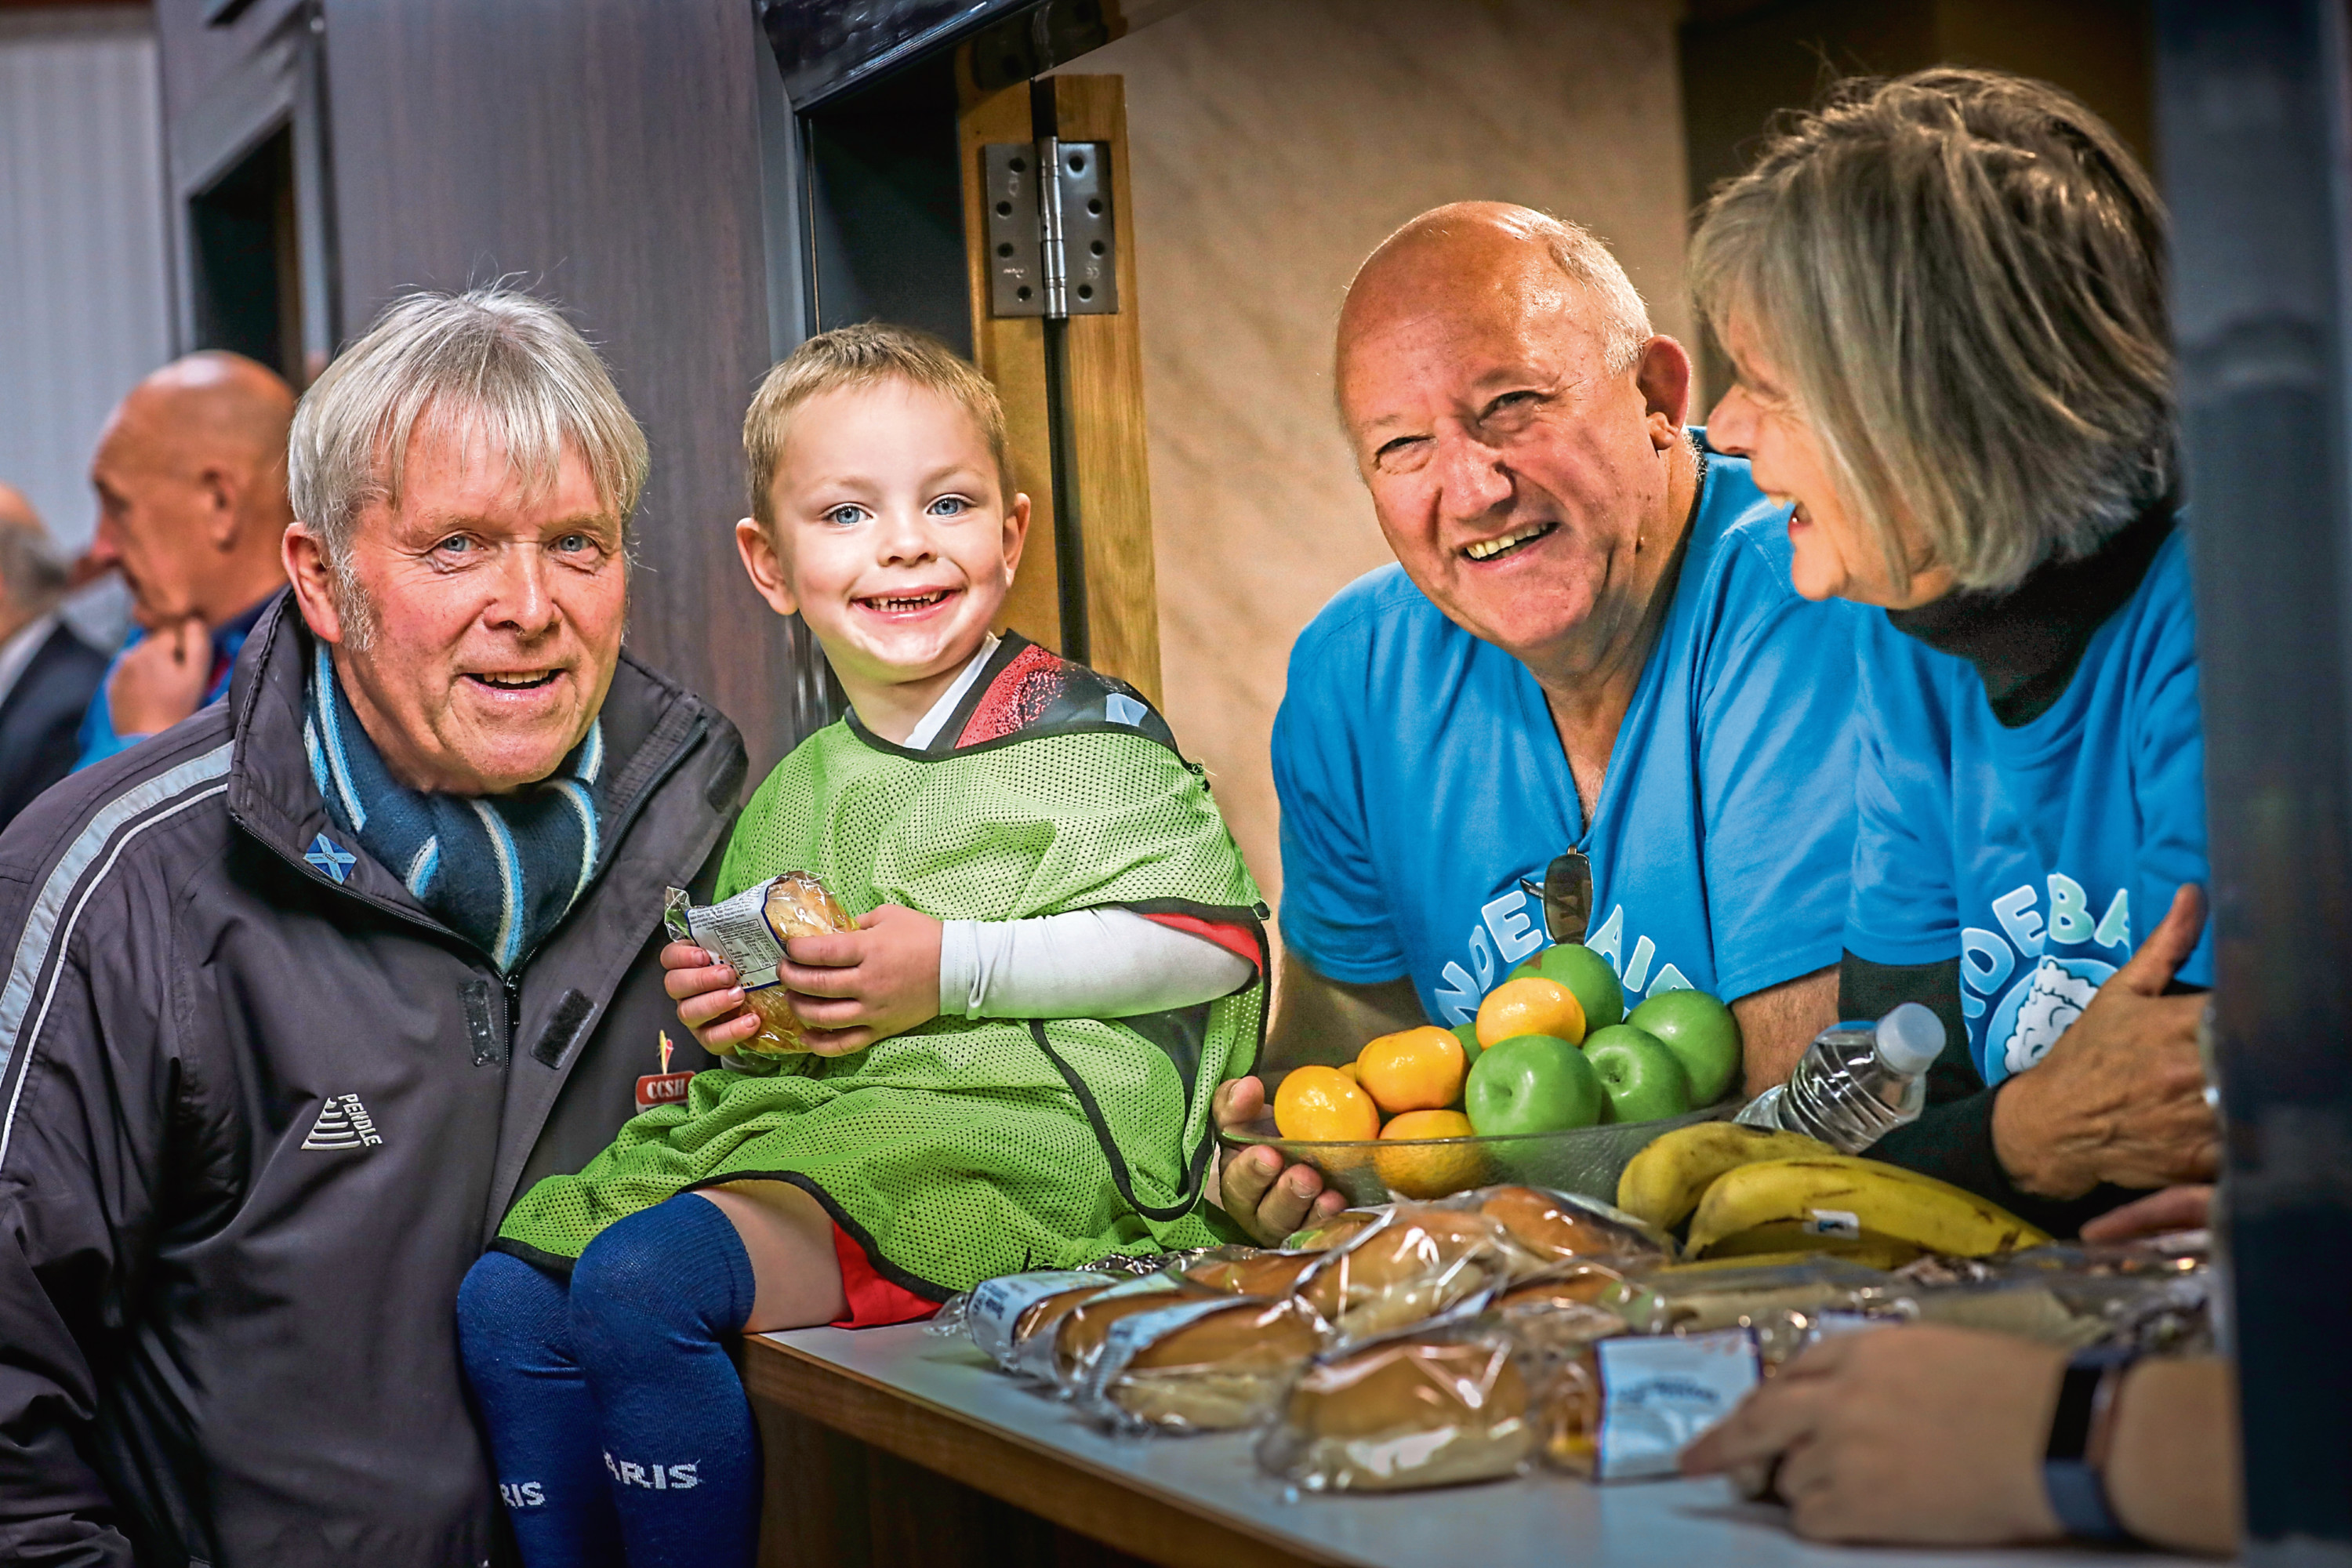 David Dorward and Jacquie Roberts, dish out the lunch to Caleb Sturrock, 4, and Jim McIlravey, President of the sports club.